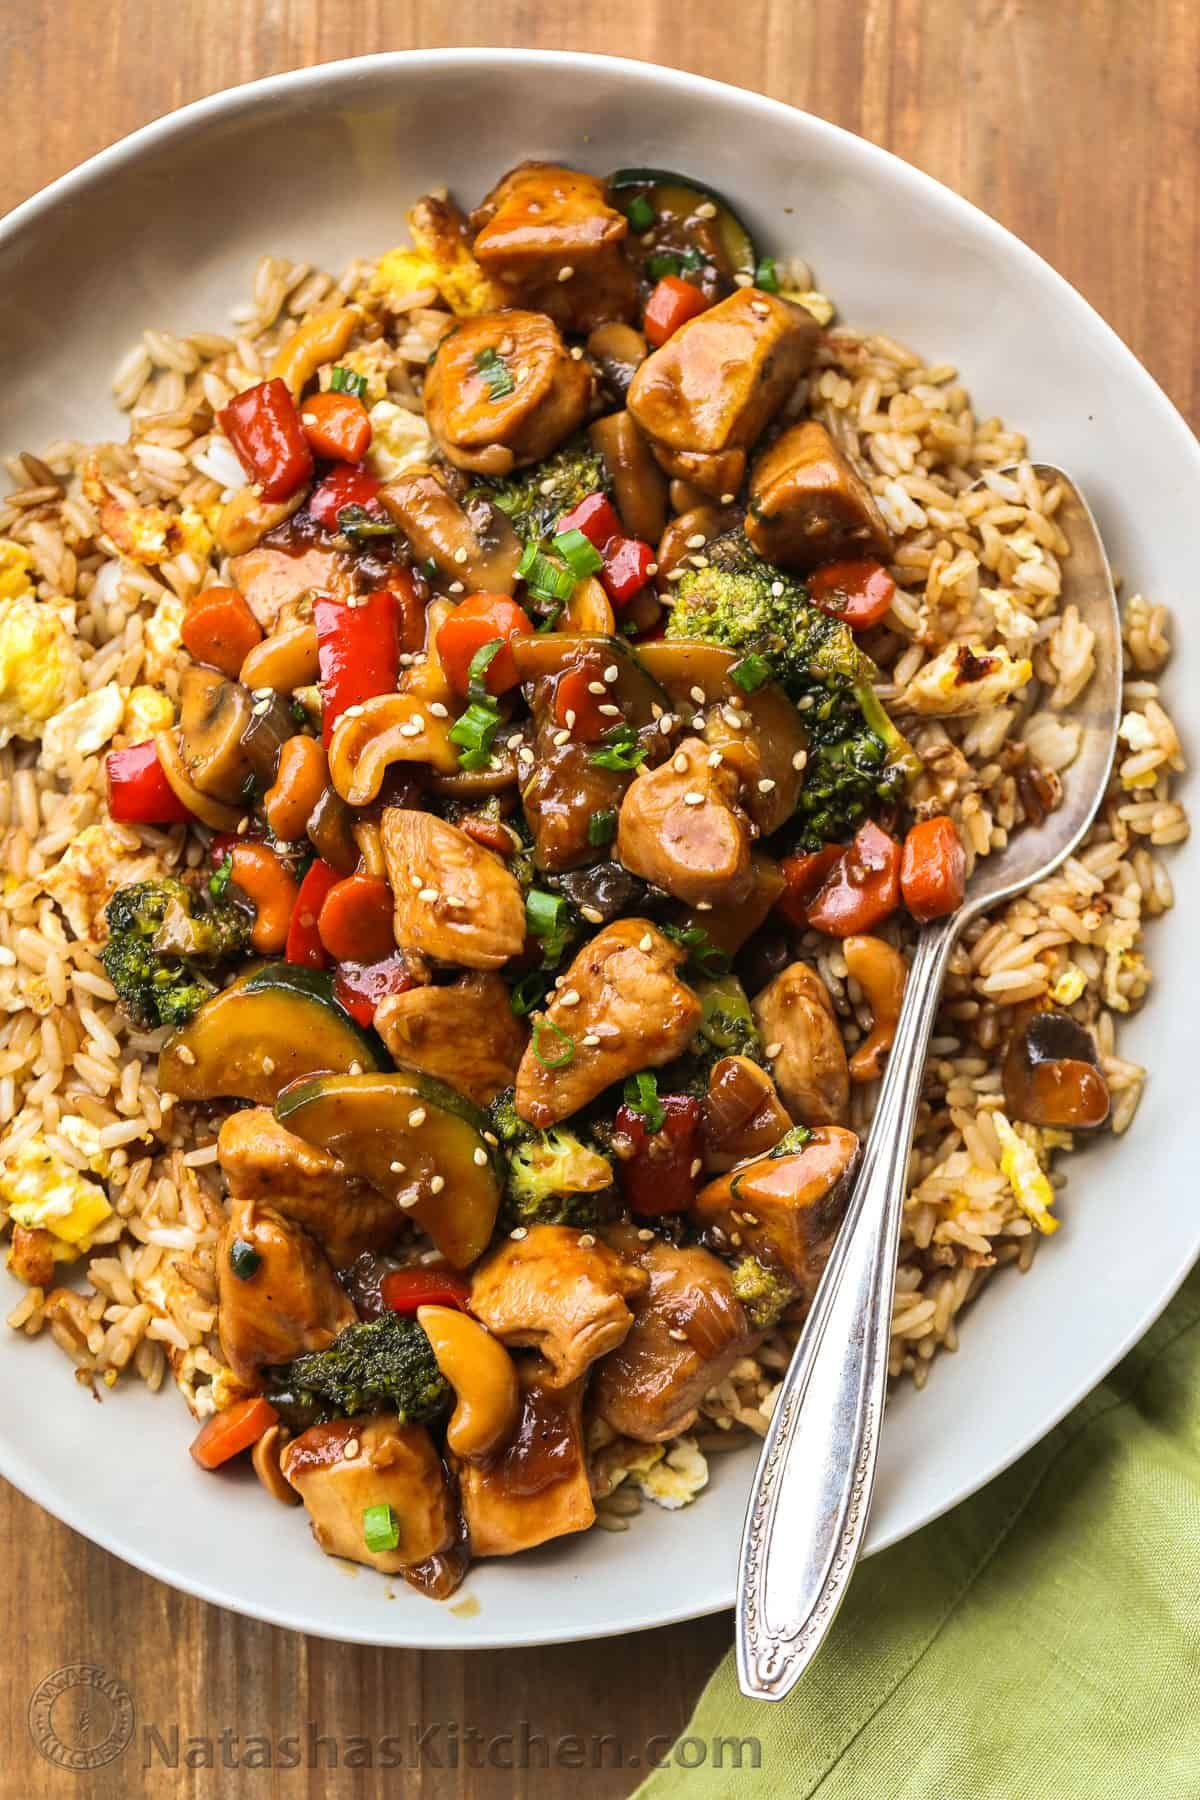 A 30 Minute Chicken Stir Fry Recipe With An Easy Ginger Honey Soy Sauce Perfect Easy Din Recipes With Soy Sauce Easy Stir Fry Recipes Stir Fry Recipes Chicken